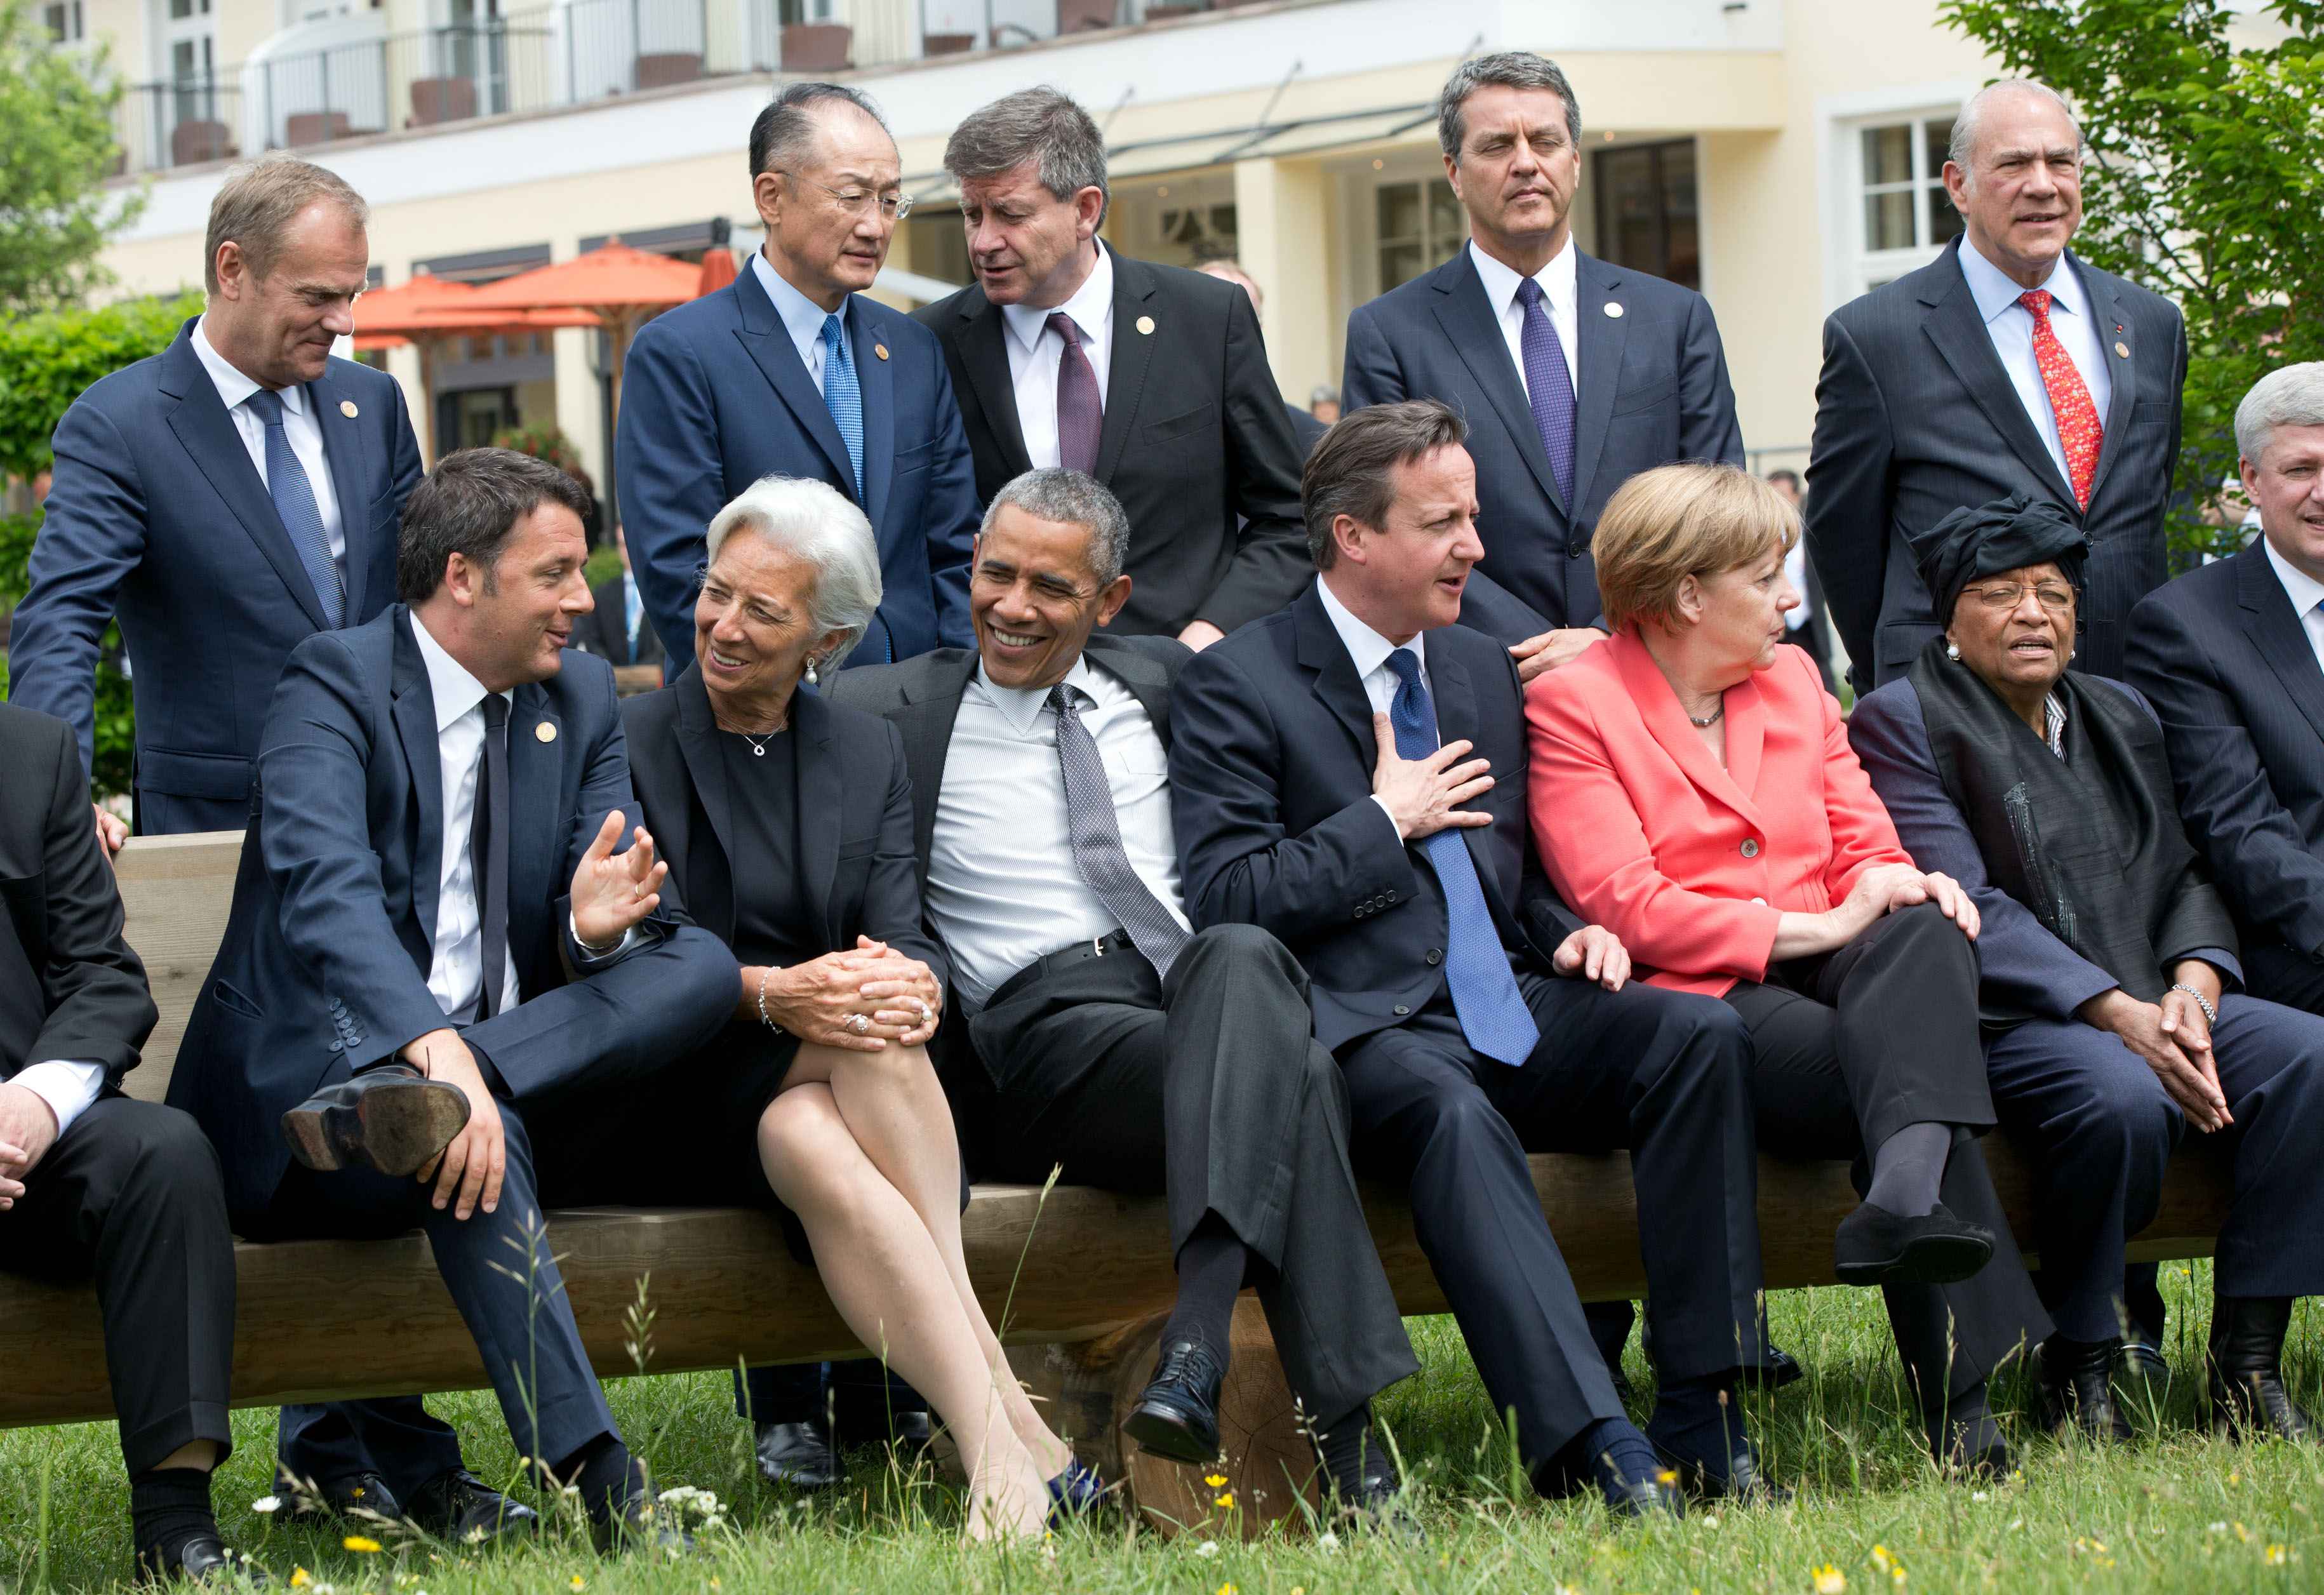 G7 leaders sit for a group photo